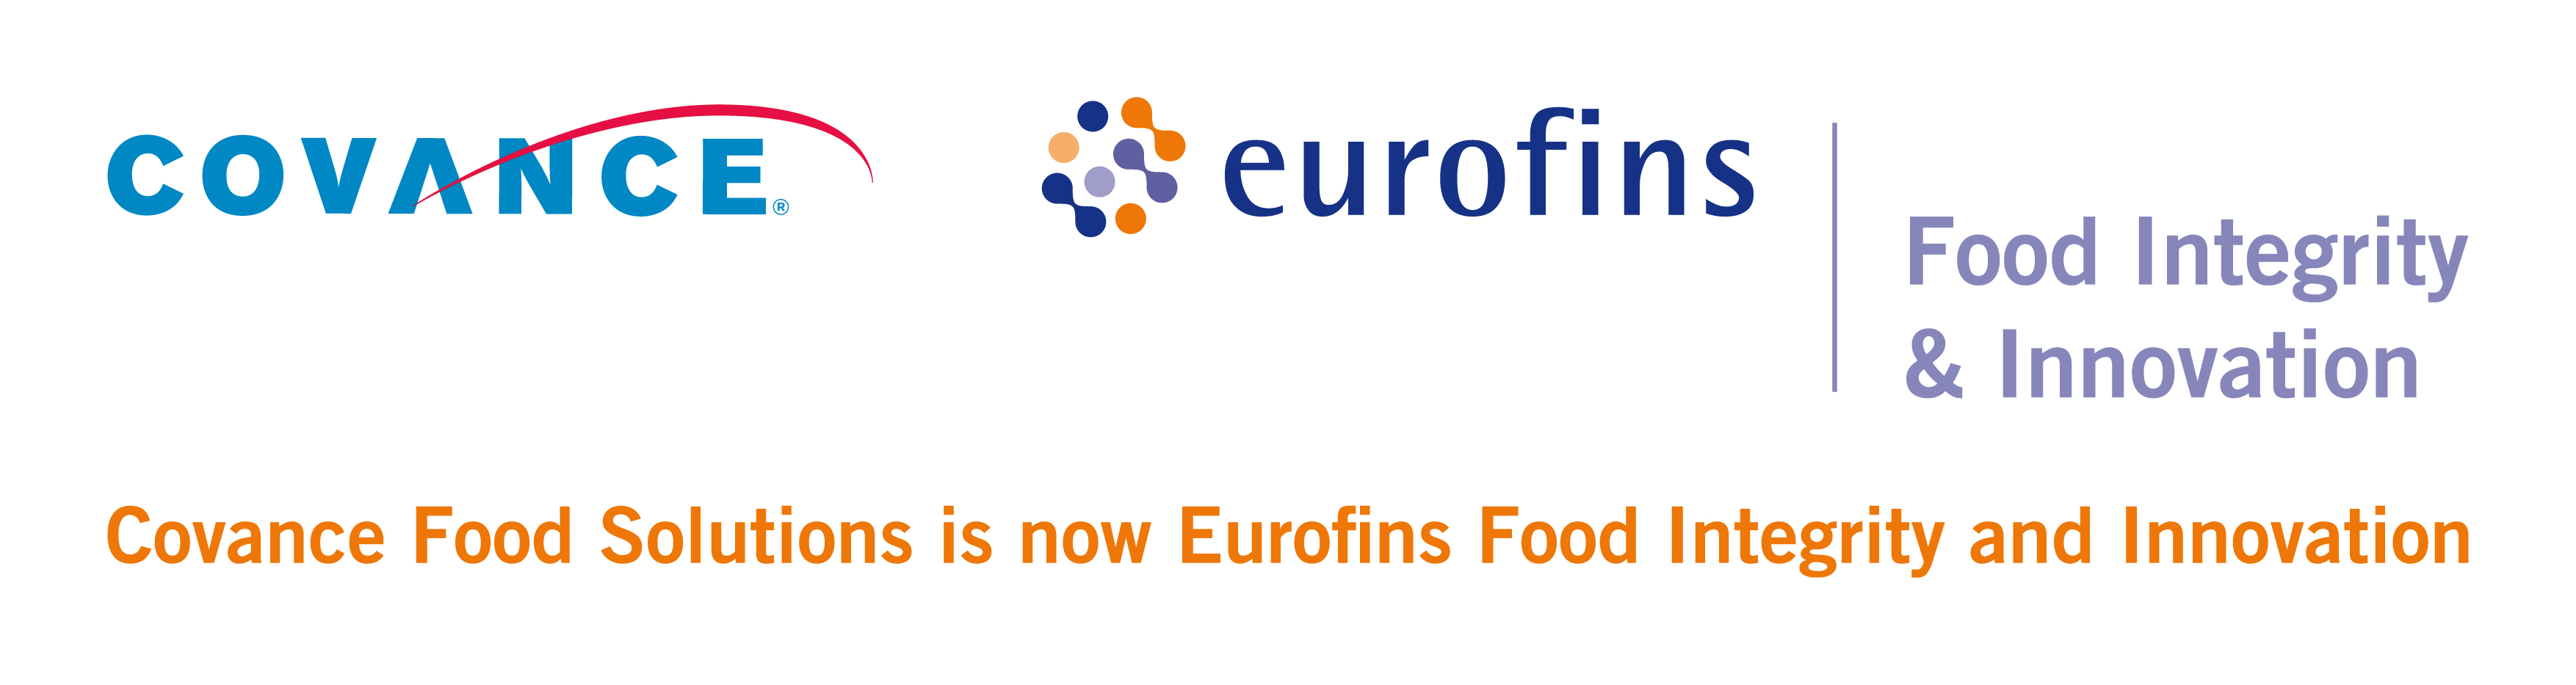 Eurofins Food Integrity & Innovation; Former Covance Food Solutions